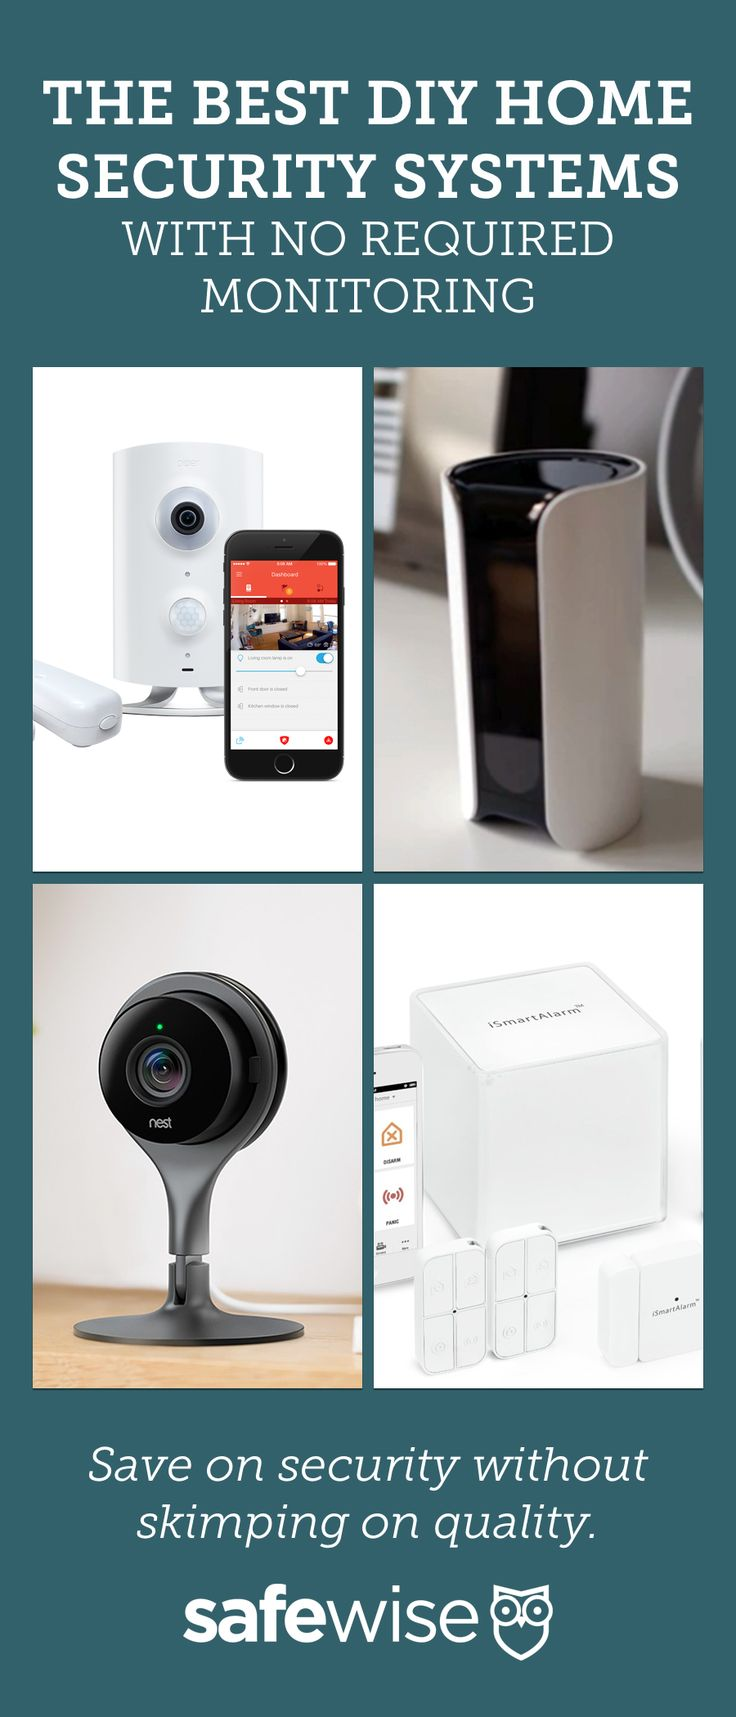 79 best diy home security images on pinterest diy home security the 5 best affordable diy home security systems of 2017 solutioingenieria Choice Image